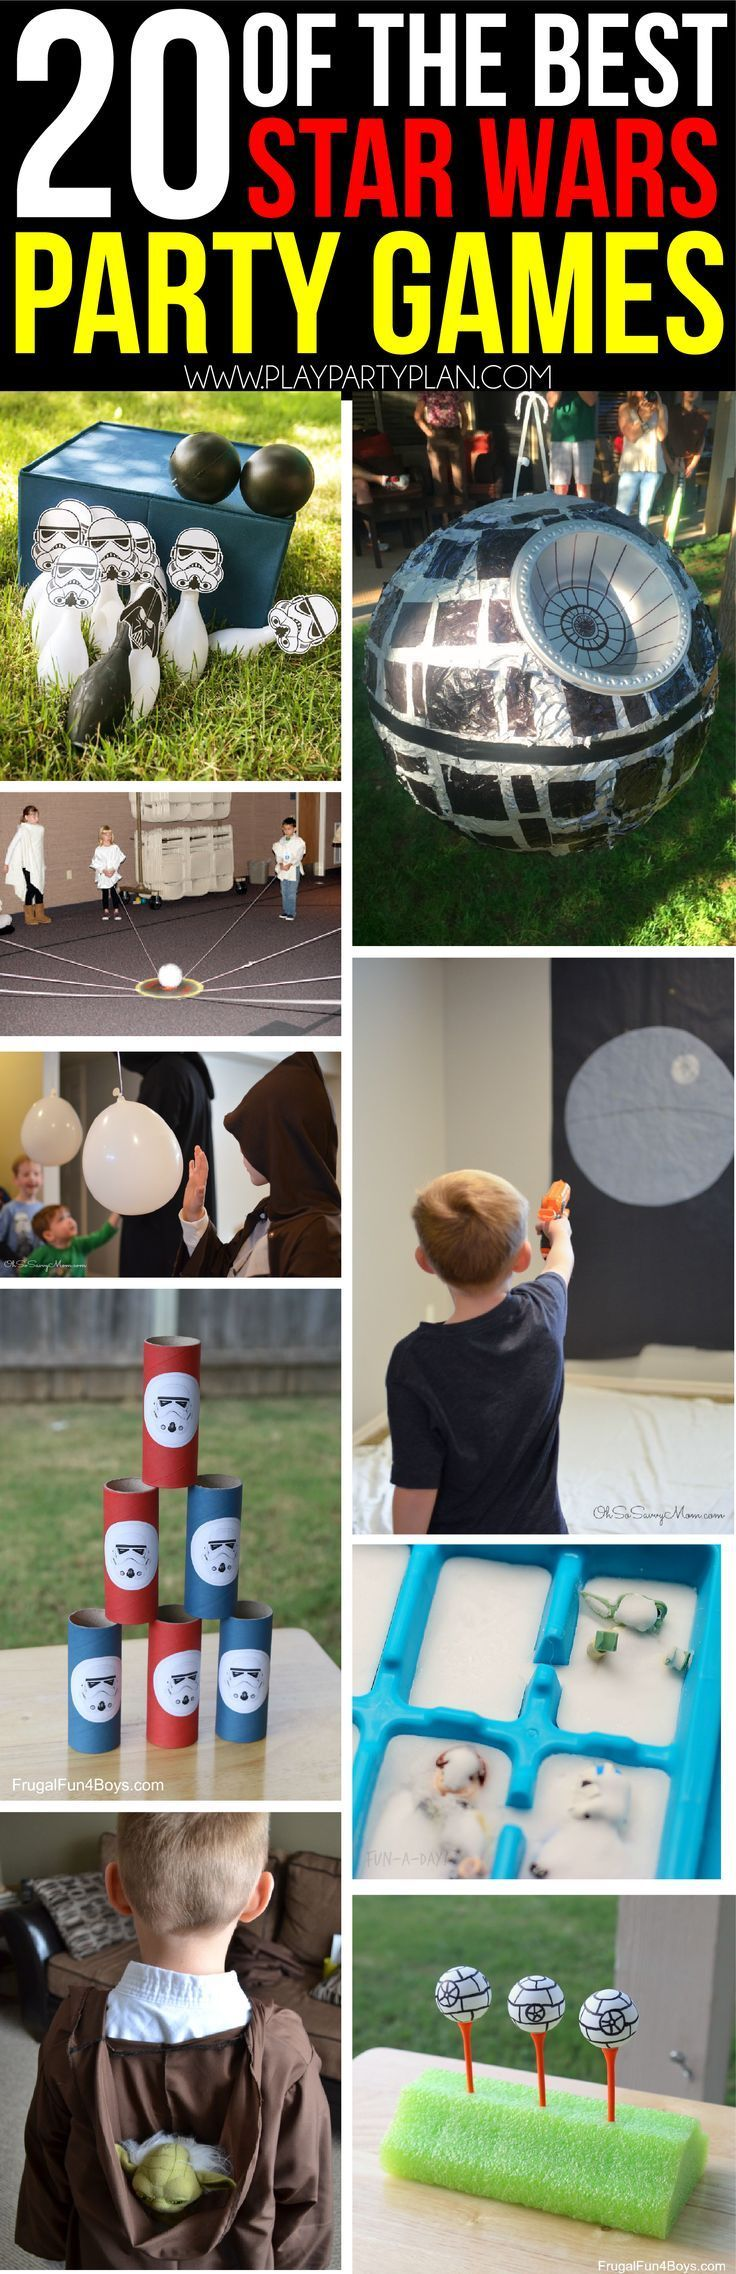 20 out of this galaxy Star Wars party games (for kids, for teens, or for adults!) including everything from obstacle course ideas to scavenger hunts to find Han Solo and Storm Troopers! Ideas you can DIY or buy, play indoor or outdoor, and even printables that are perfect for Star Wars birthdays!